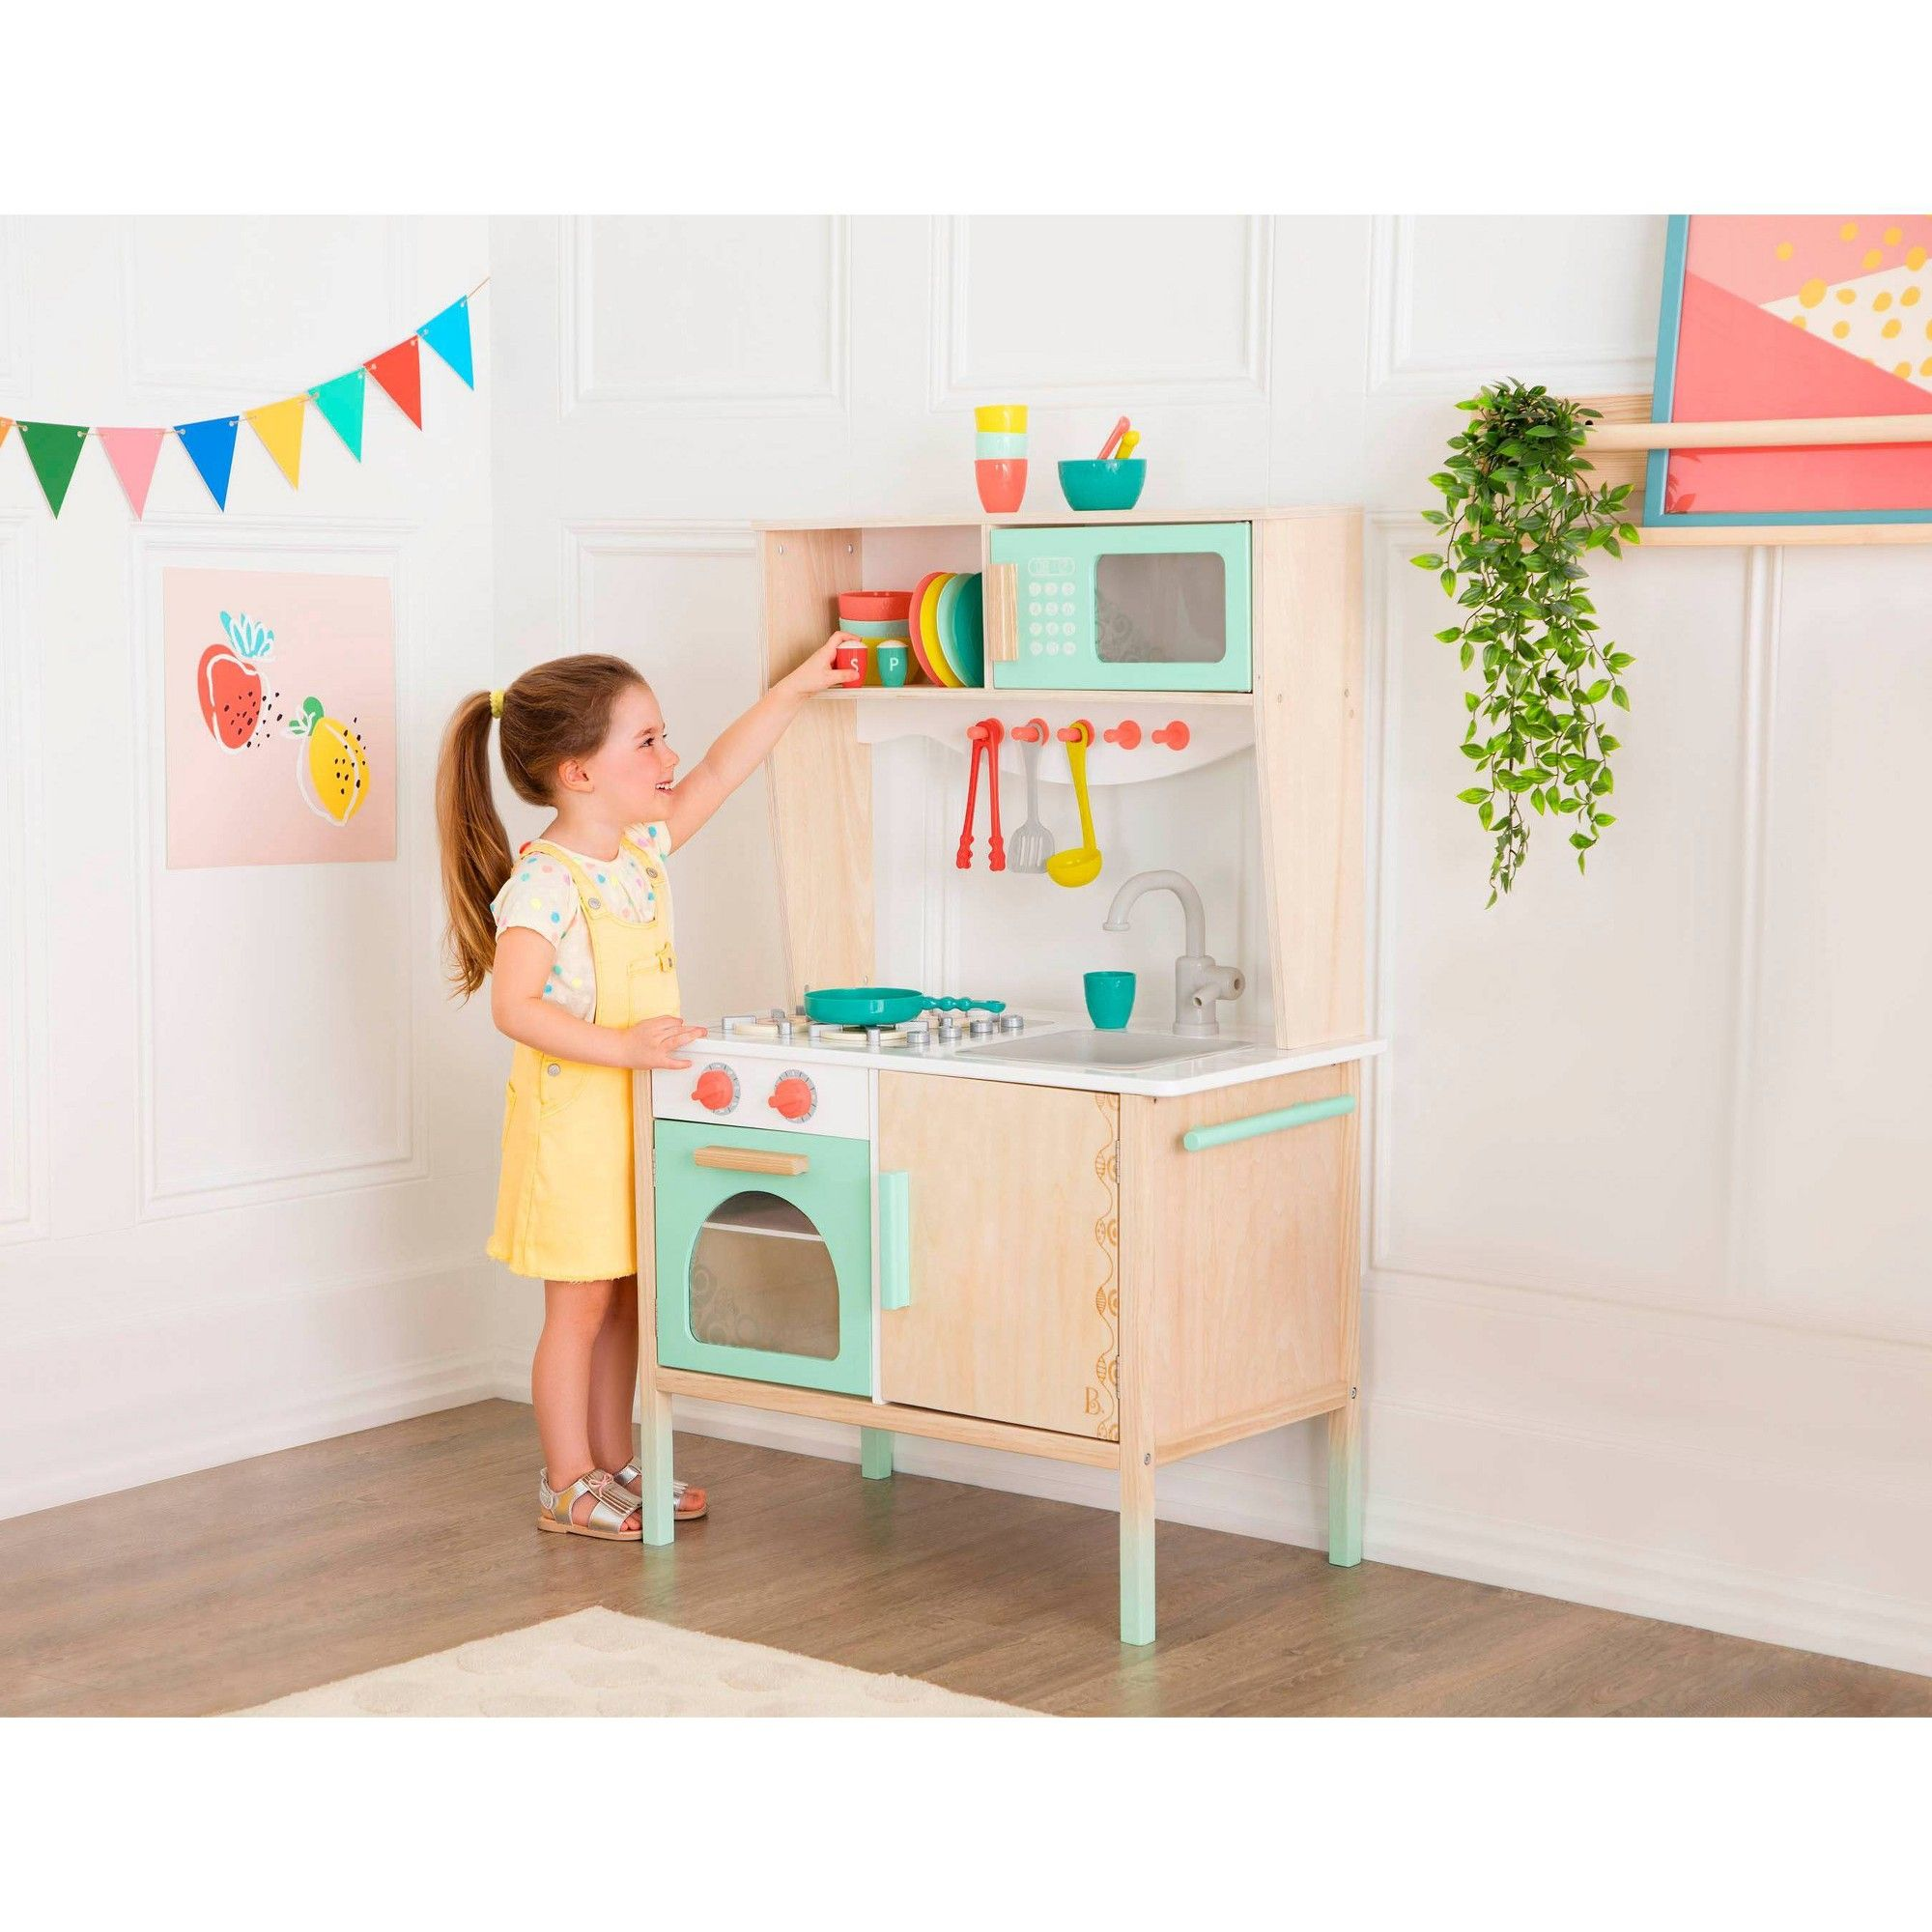 Toy Refrigerator Hearth Hand With Magnolia Target Ikea